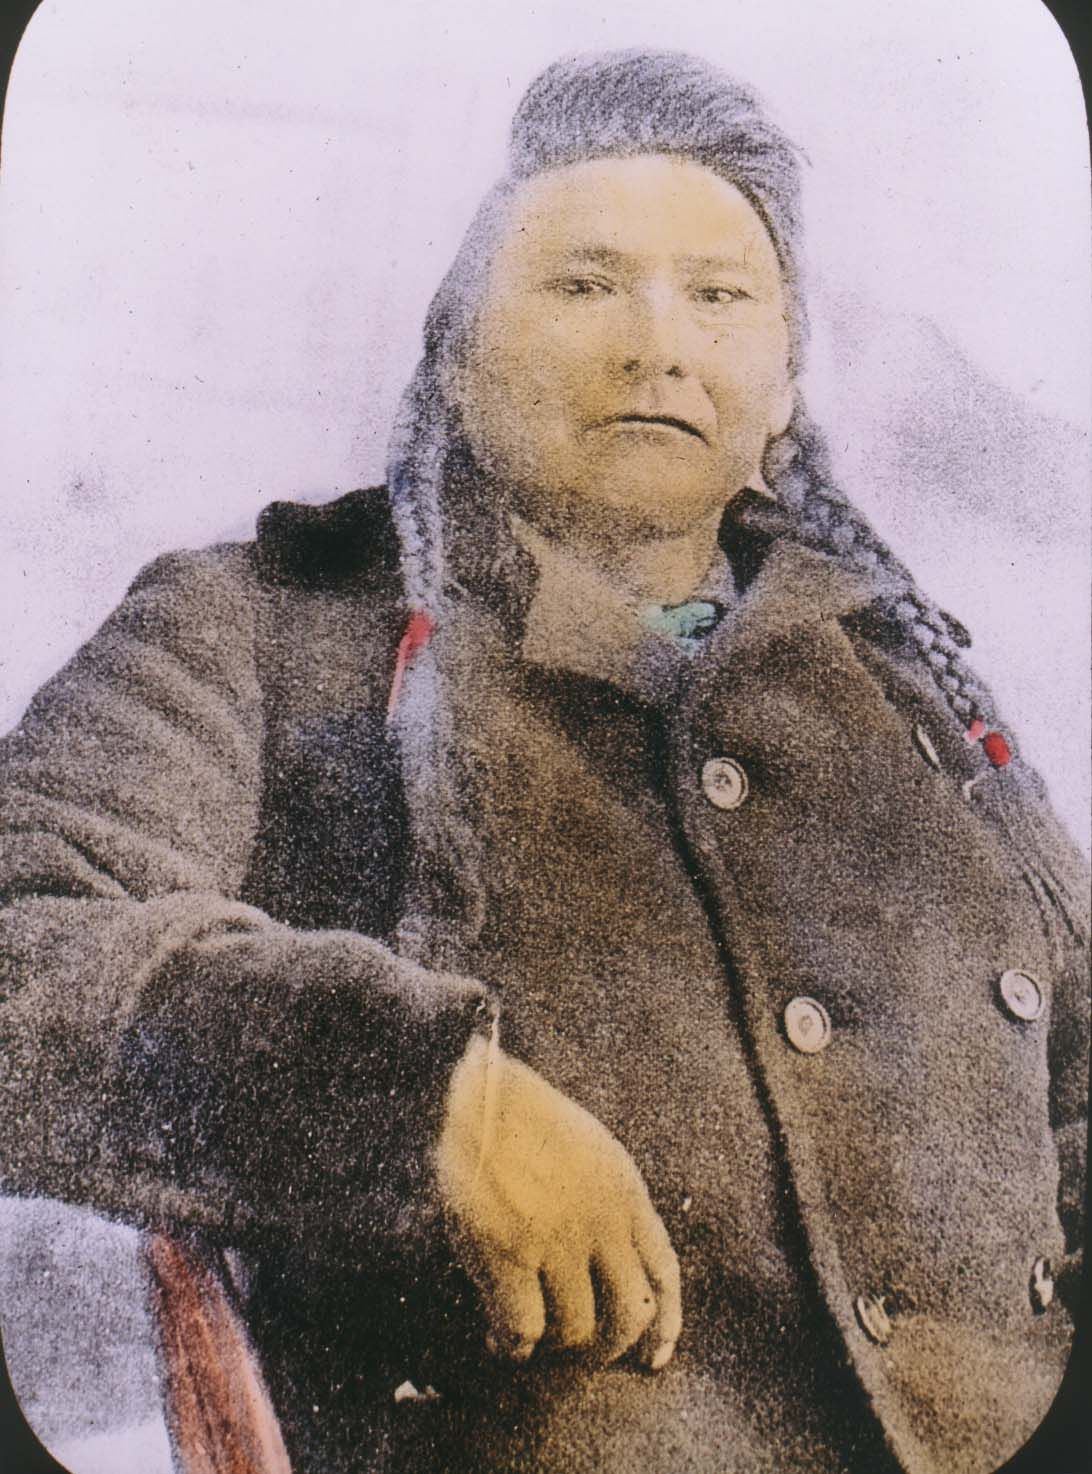 Chief joseph Rare image i share information with a librarian in washington about native american special the Nez Perce and he told me this picture was make 3 months before he died and this is the only and first in collard picture from him